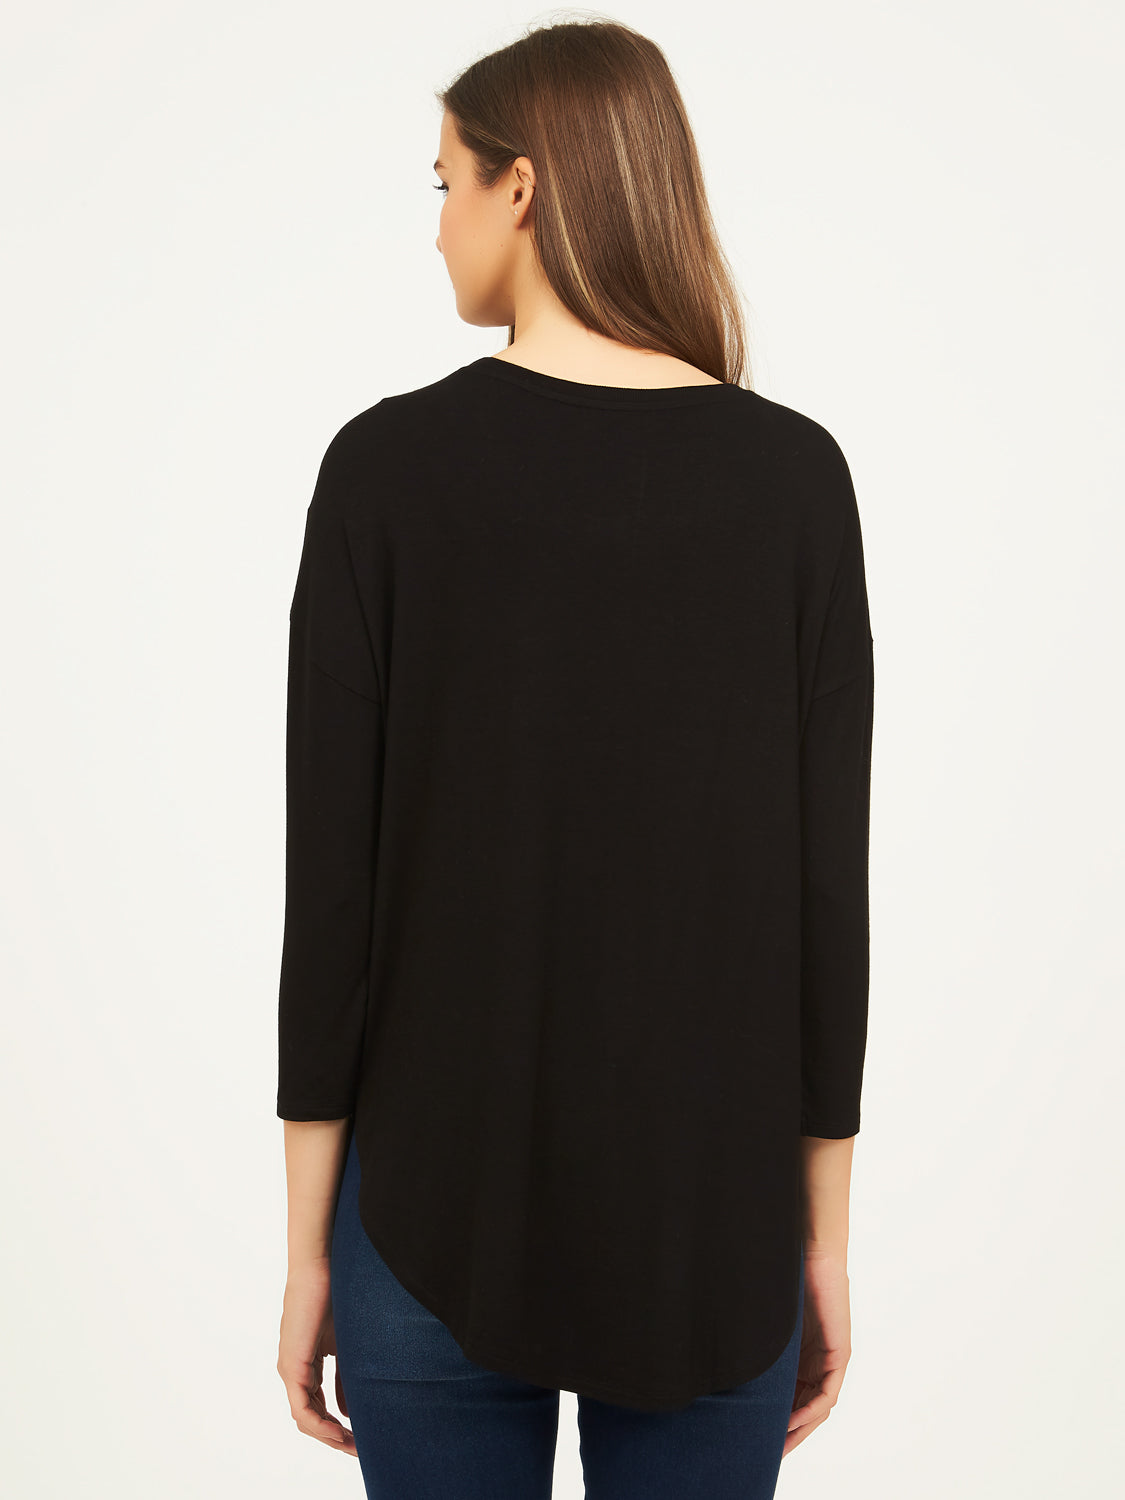 Ribbed Neck Long Sleeve Tee